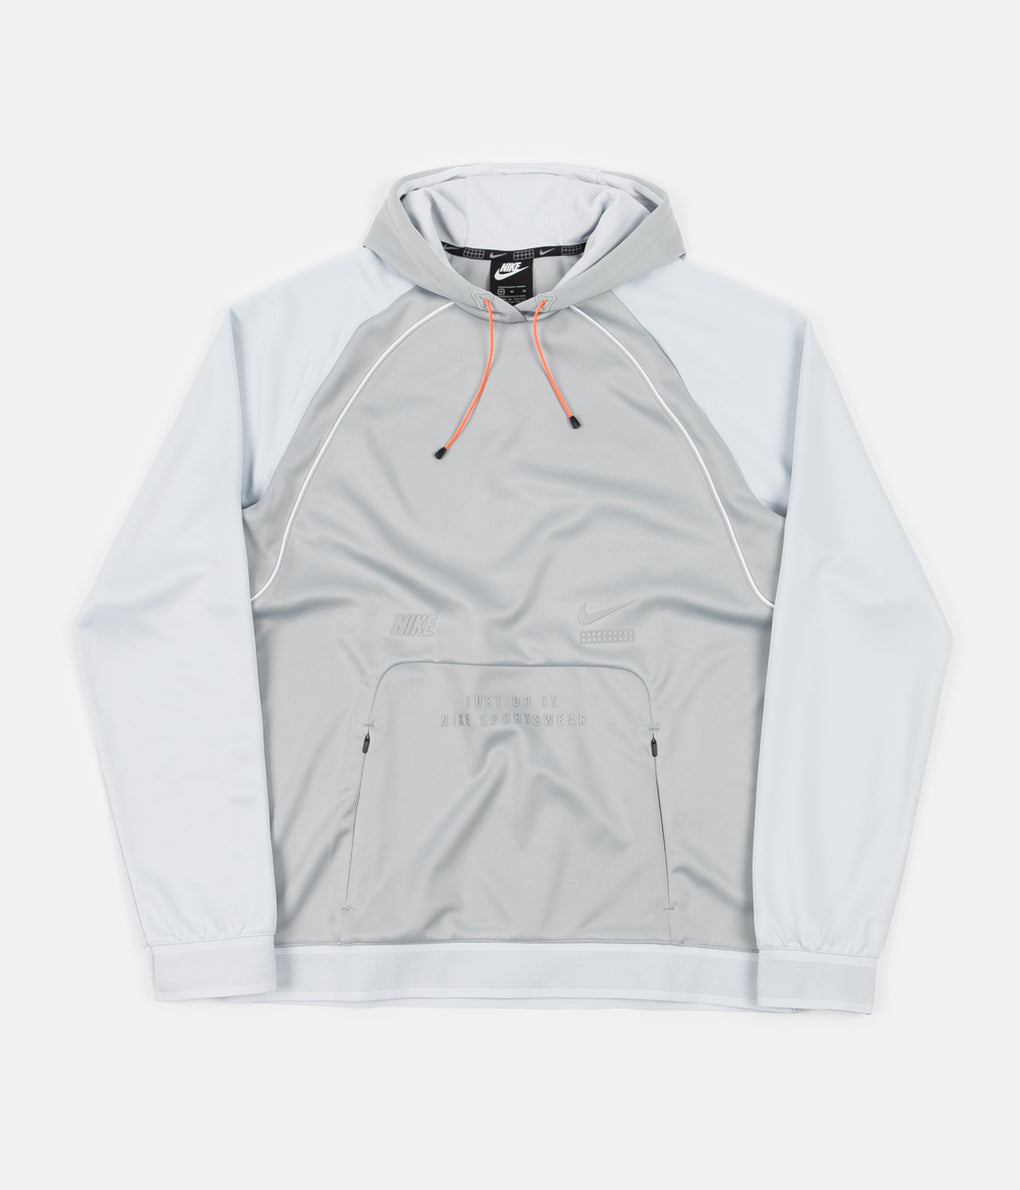 Nike DNA Hoodie - Light Smoke Grey / Pure Platinum